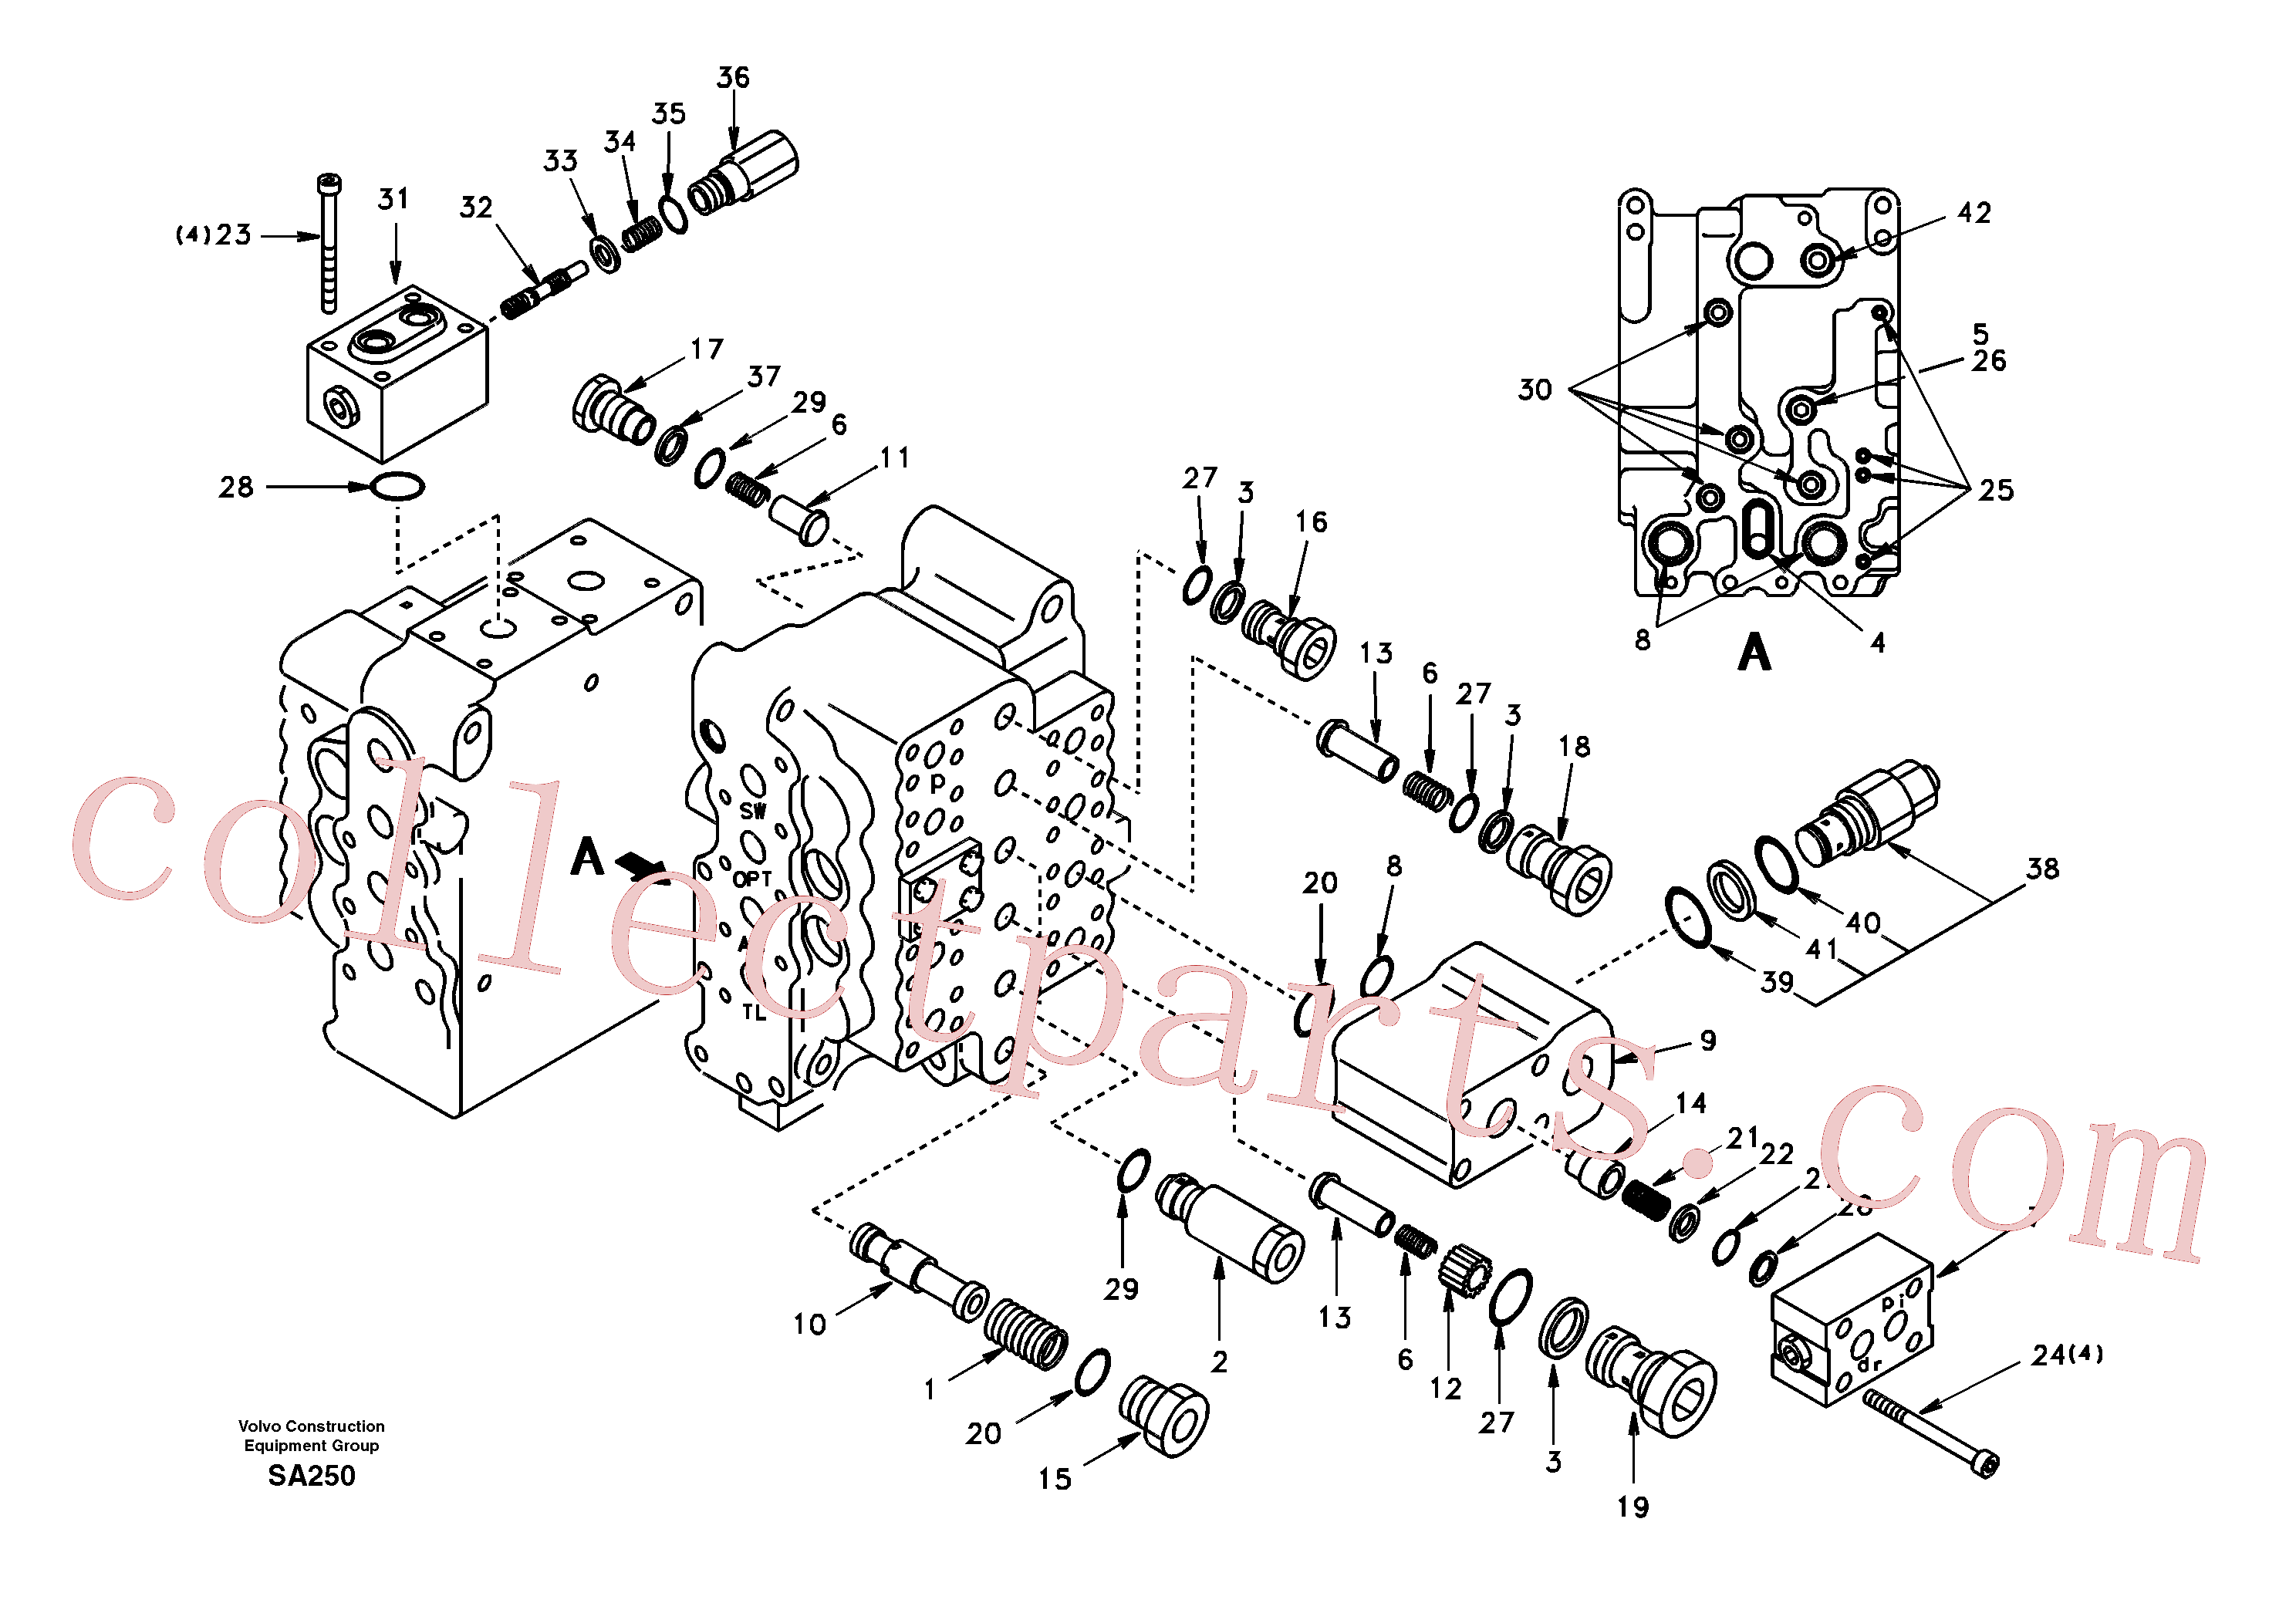 SA9511-12034 for Volvo Main control valve, relief valve and dipper arm holding(SA250 assembly)